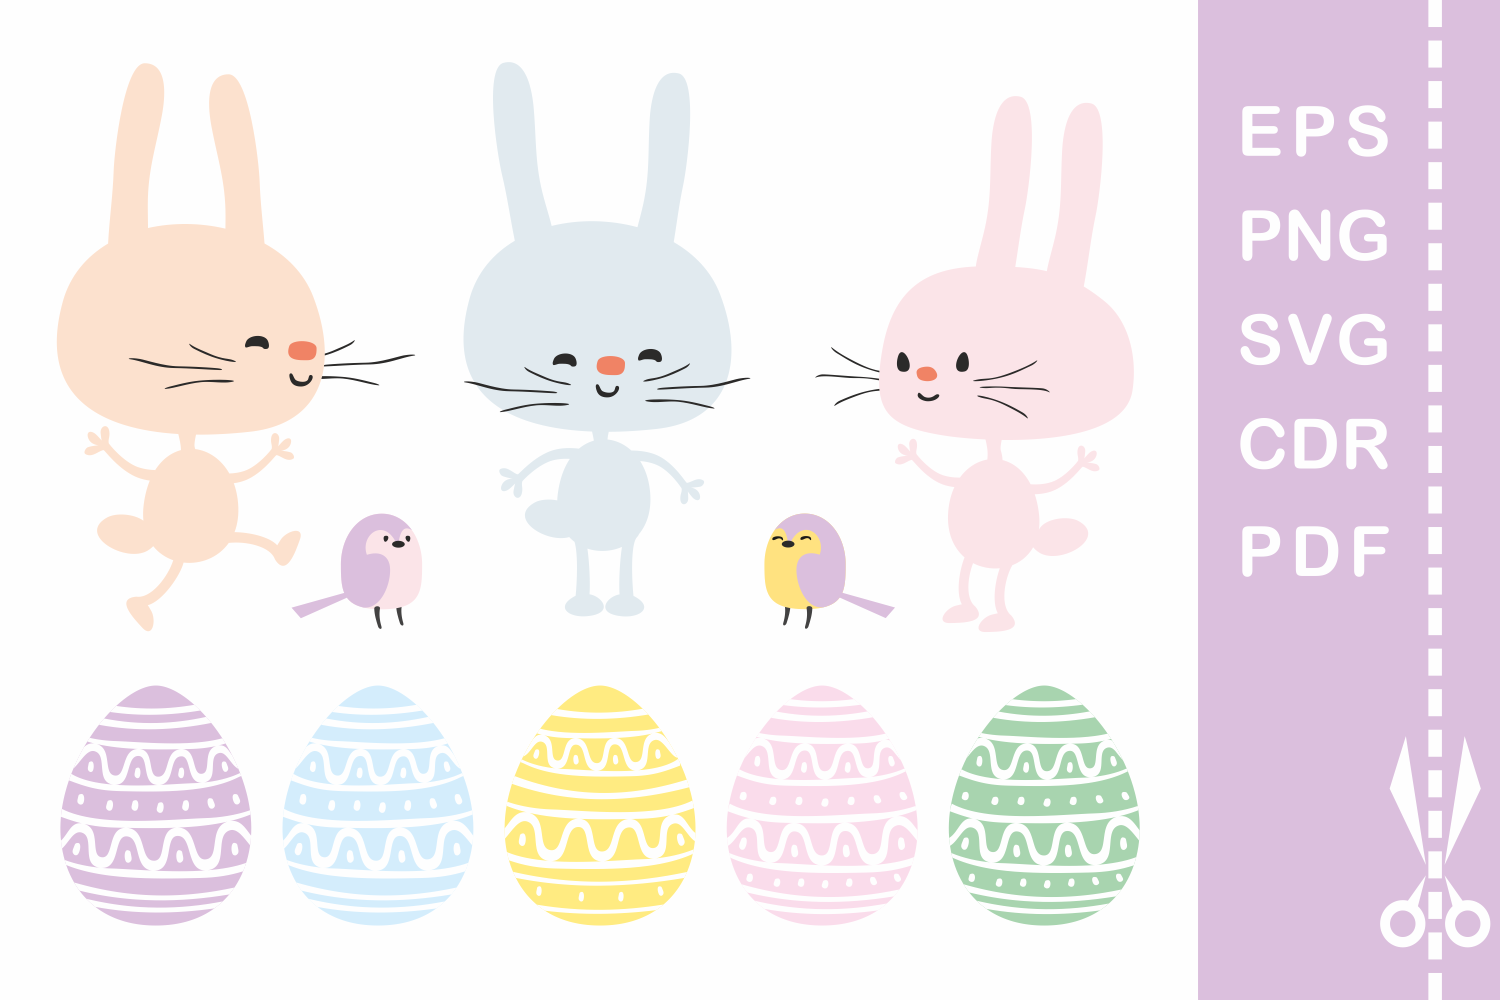 Download Free Funny Easter Bunnies Vector Cliparts And Cutting Files Graphic for Cricut Explore, Silhouette and other cutting machines.